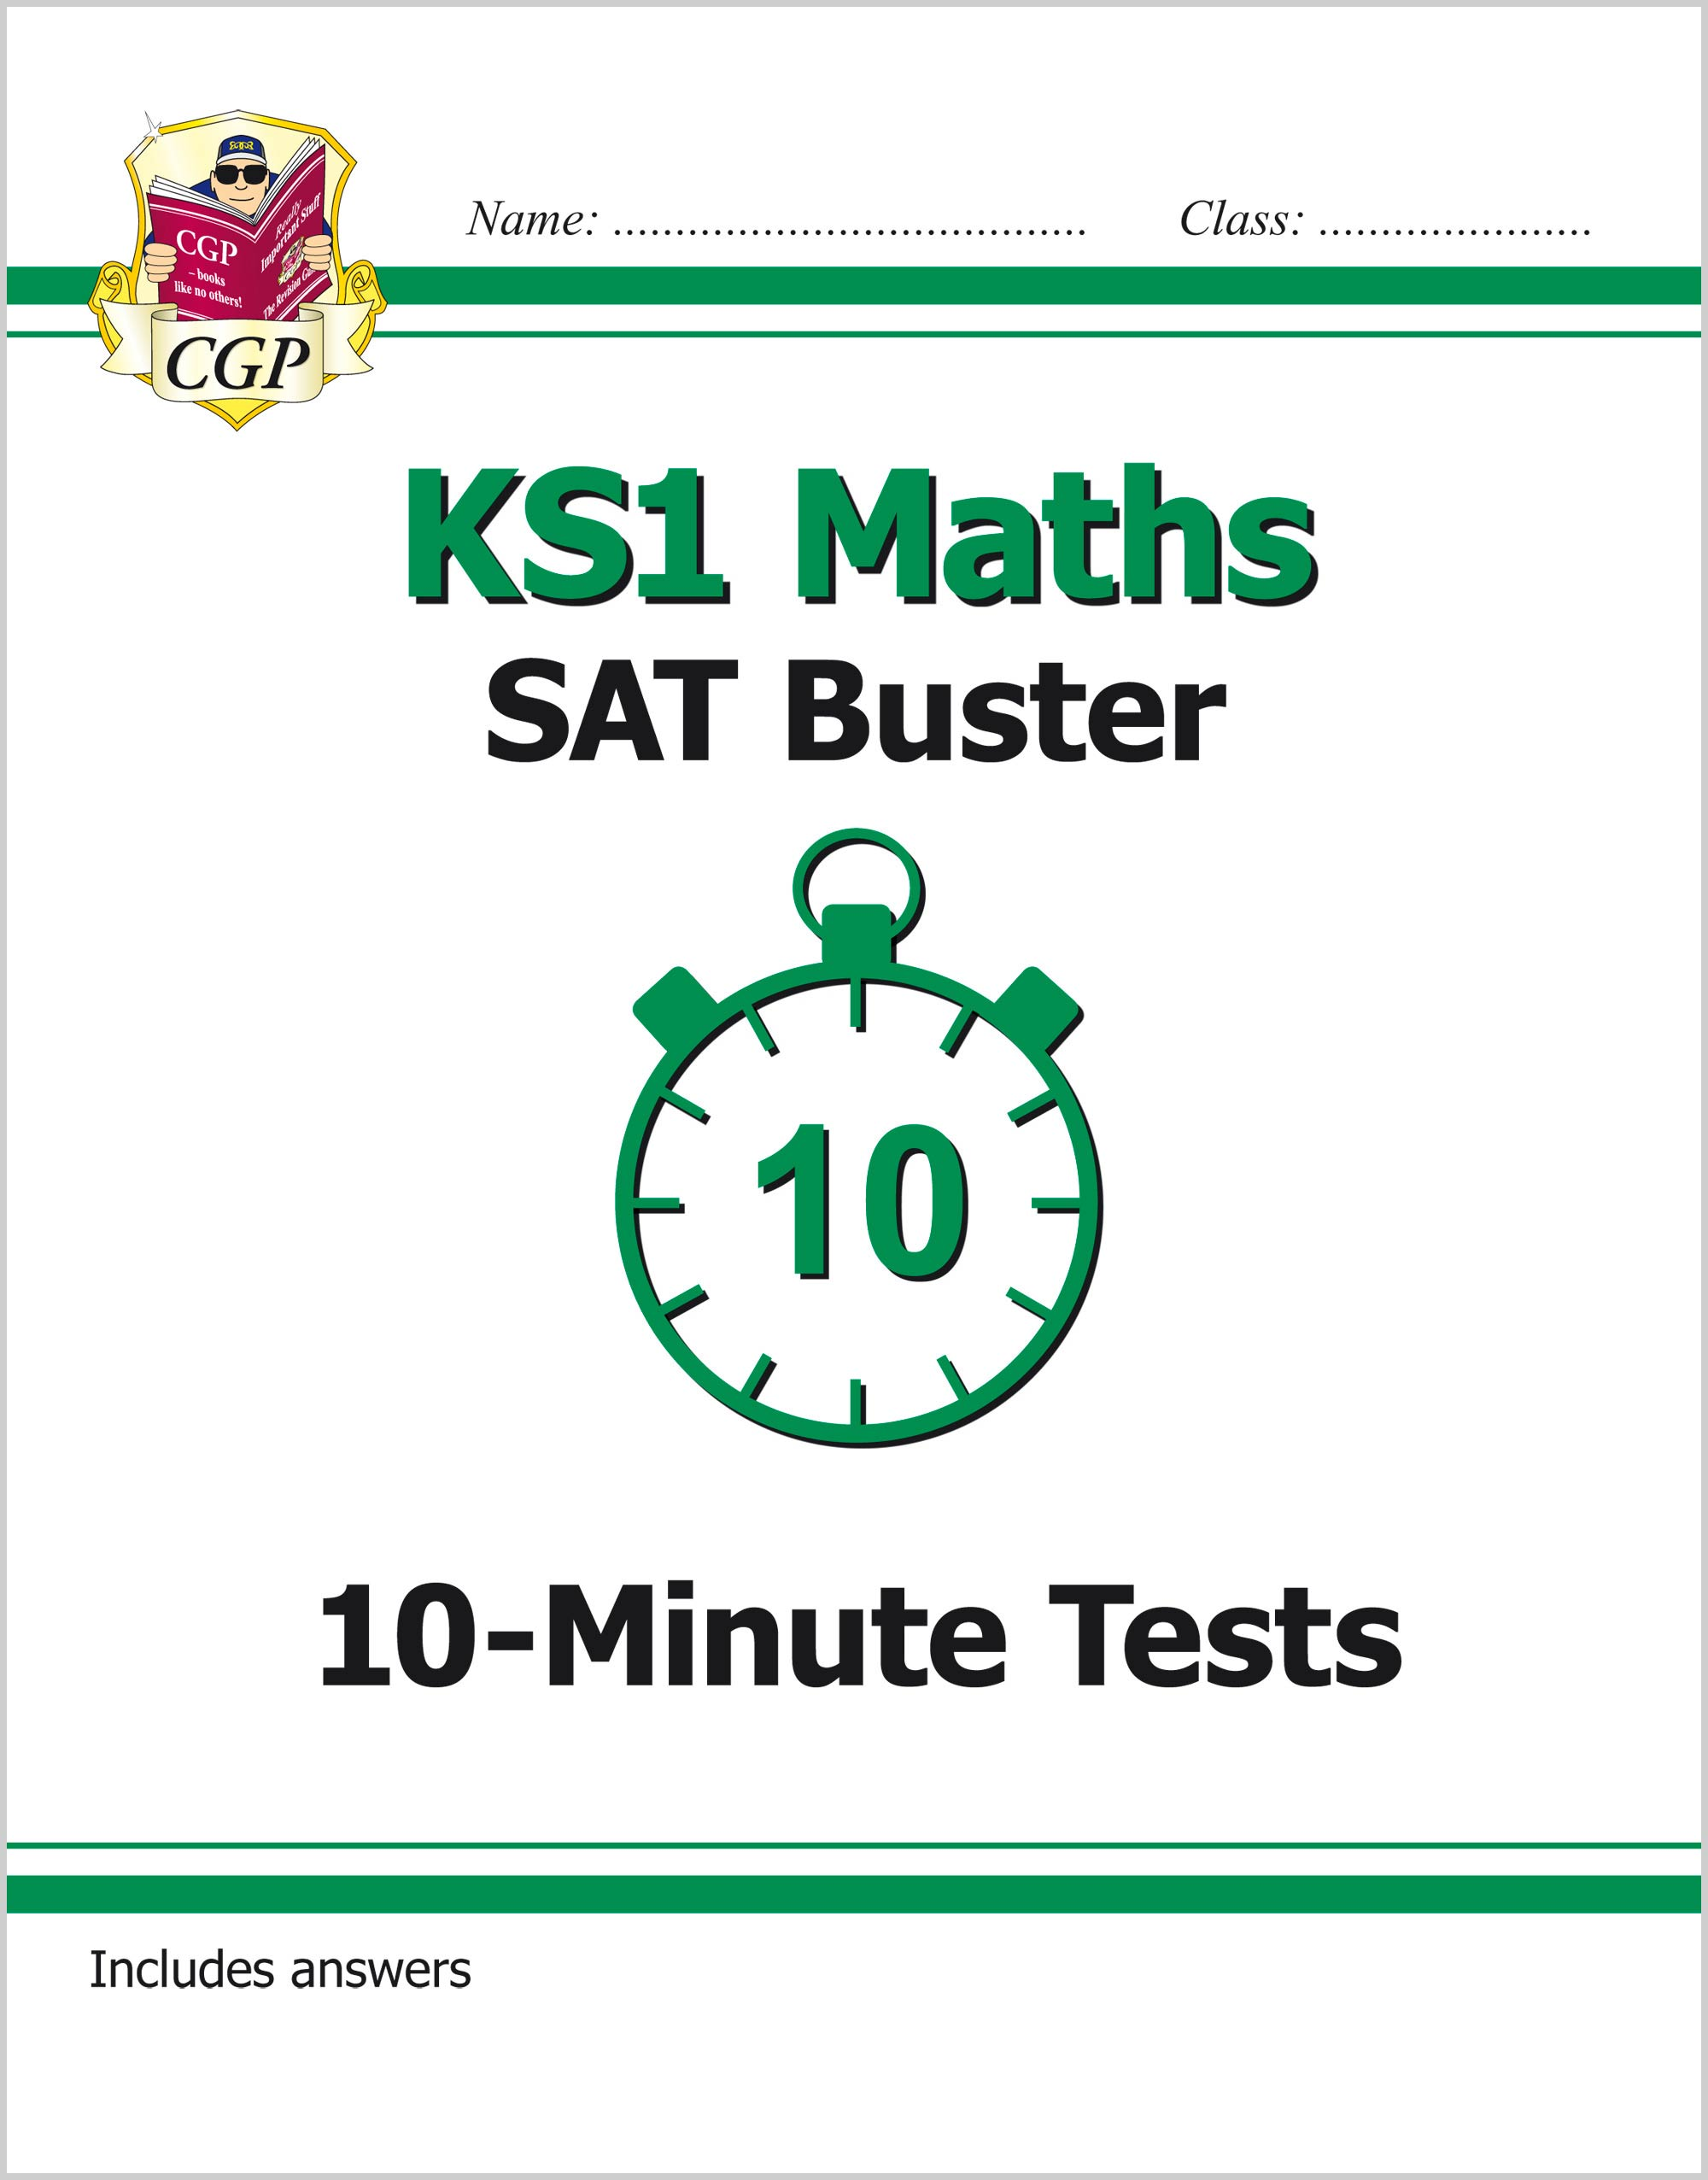 MXP11 - KS1 Maths SAT Buster: 10-Minute Tests